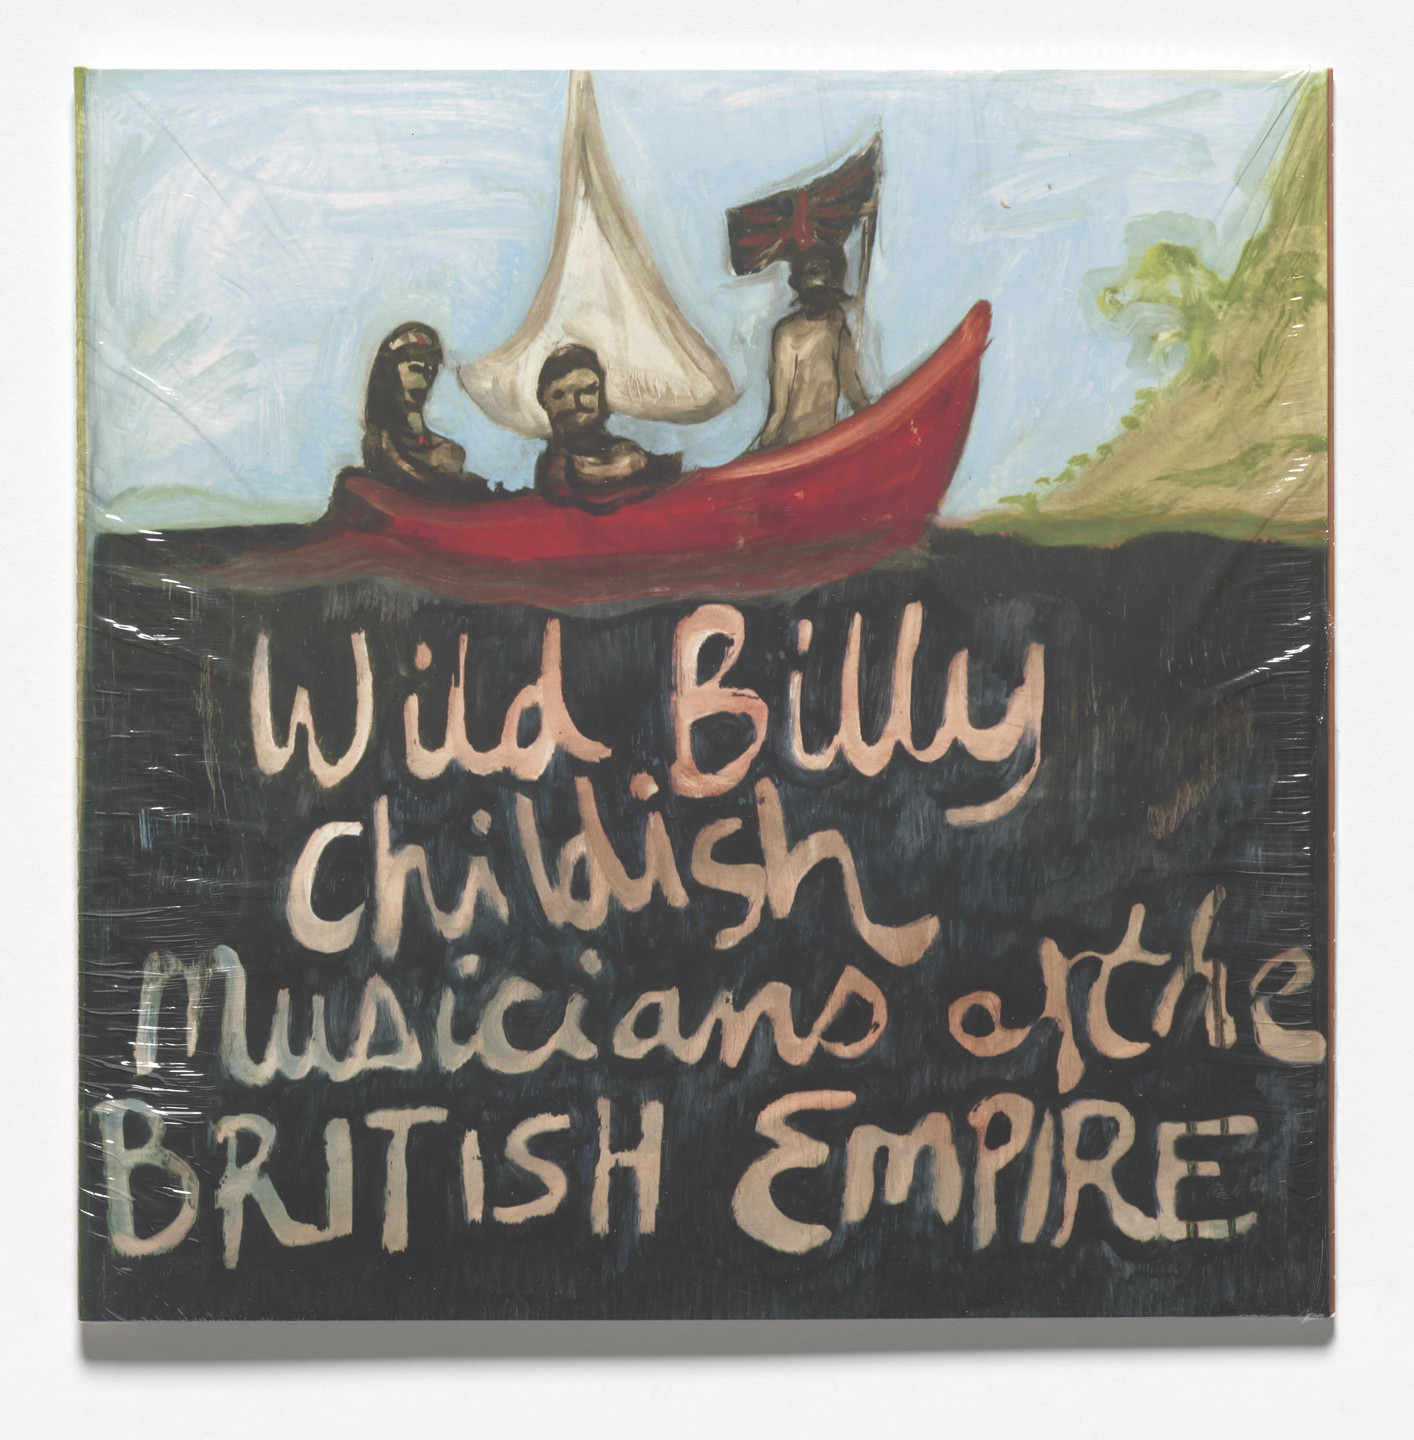 Billy Childish, Peter Doig. Wild Billy Childish & The Musicians of the British Empire. 2010